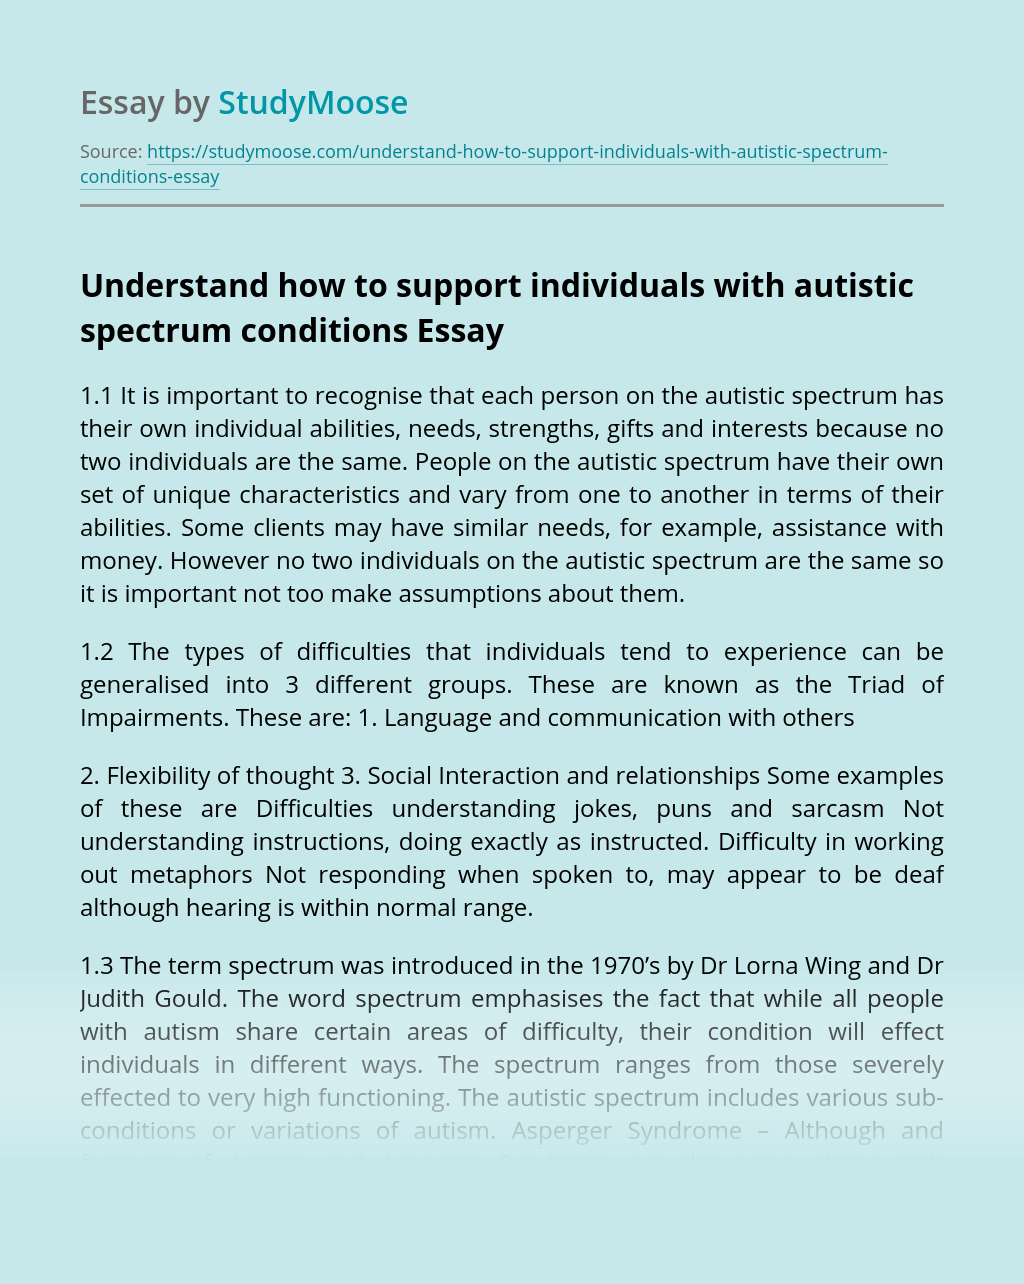 Understand how to support individuals with autistic spectrum conditions